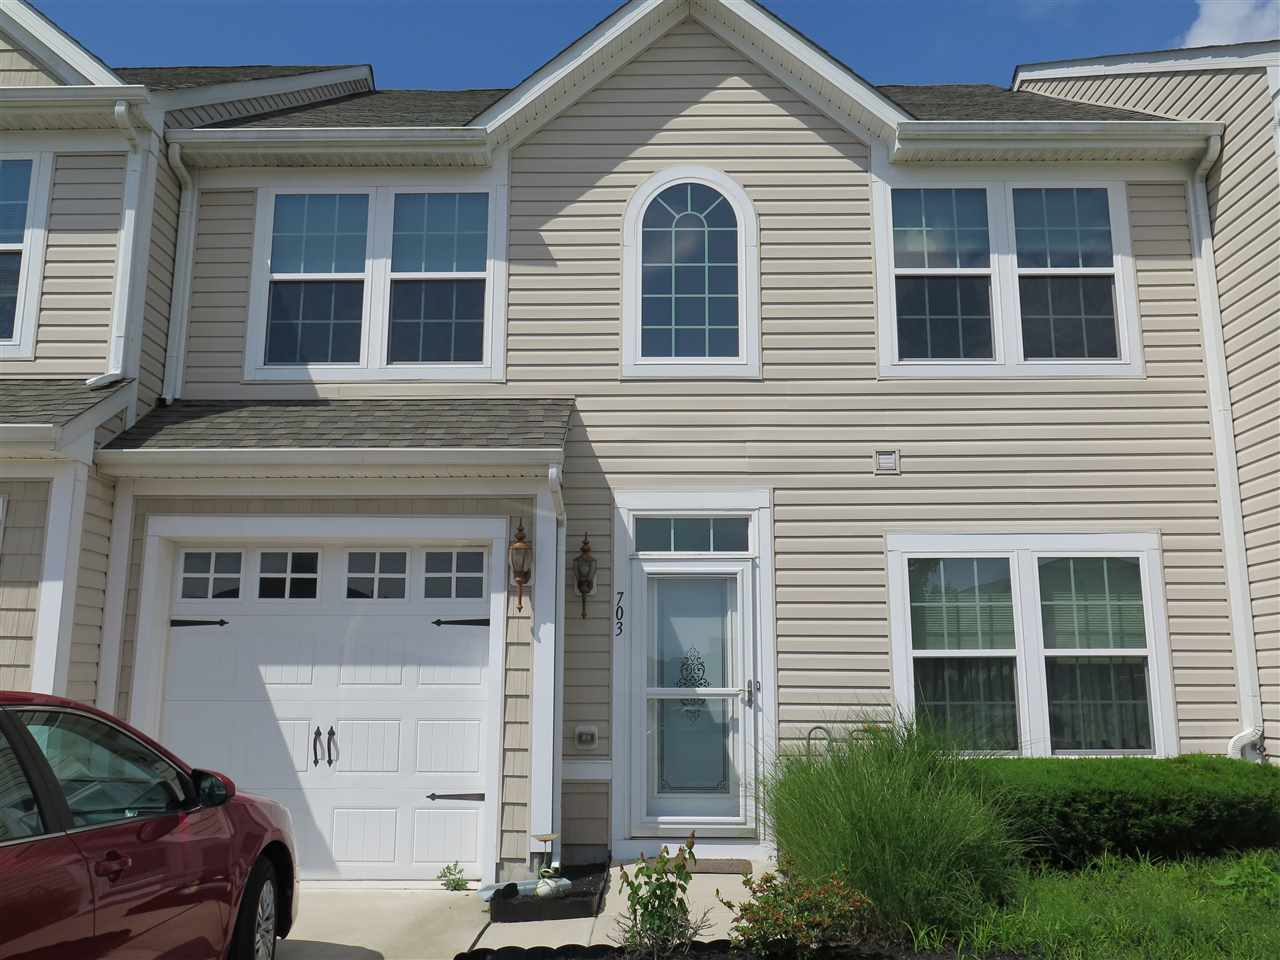 Townhouse for Sale at 703 Tidewater Avenue Rio Grande, New Jersey 08242 United States